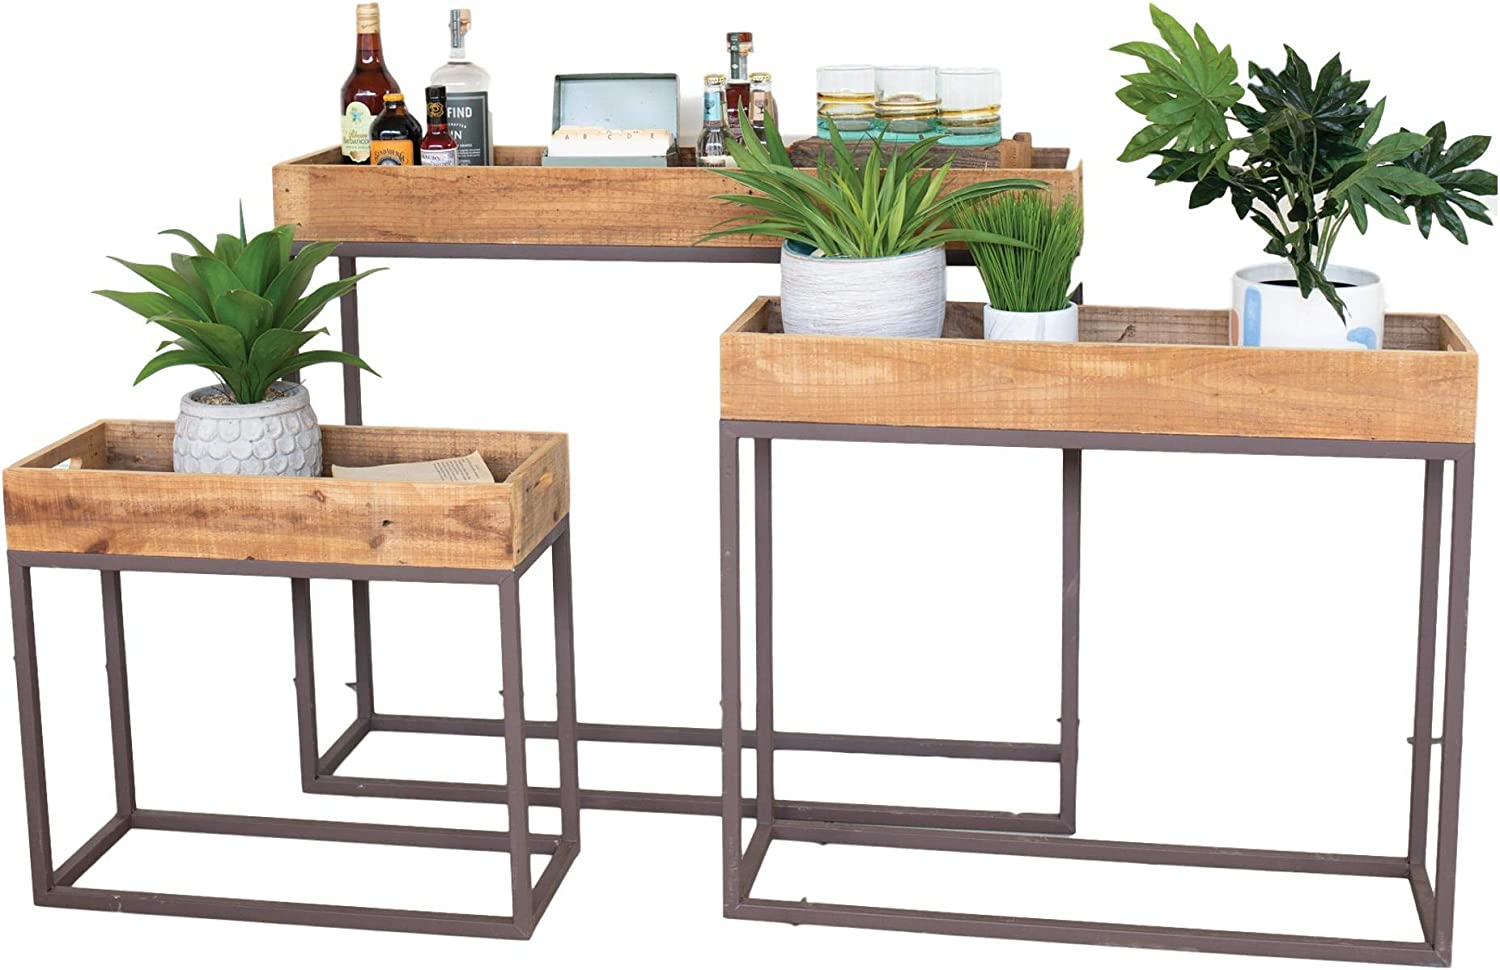 MY SWANKY HOME Recycled Wood Console Tray Table Set Three Rustic Metal Base Serving Plant Stand